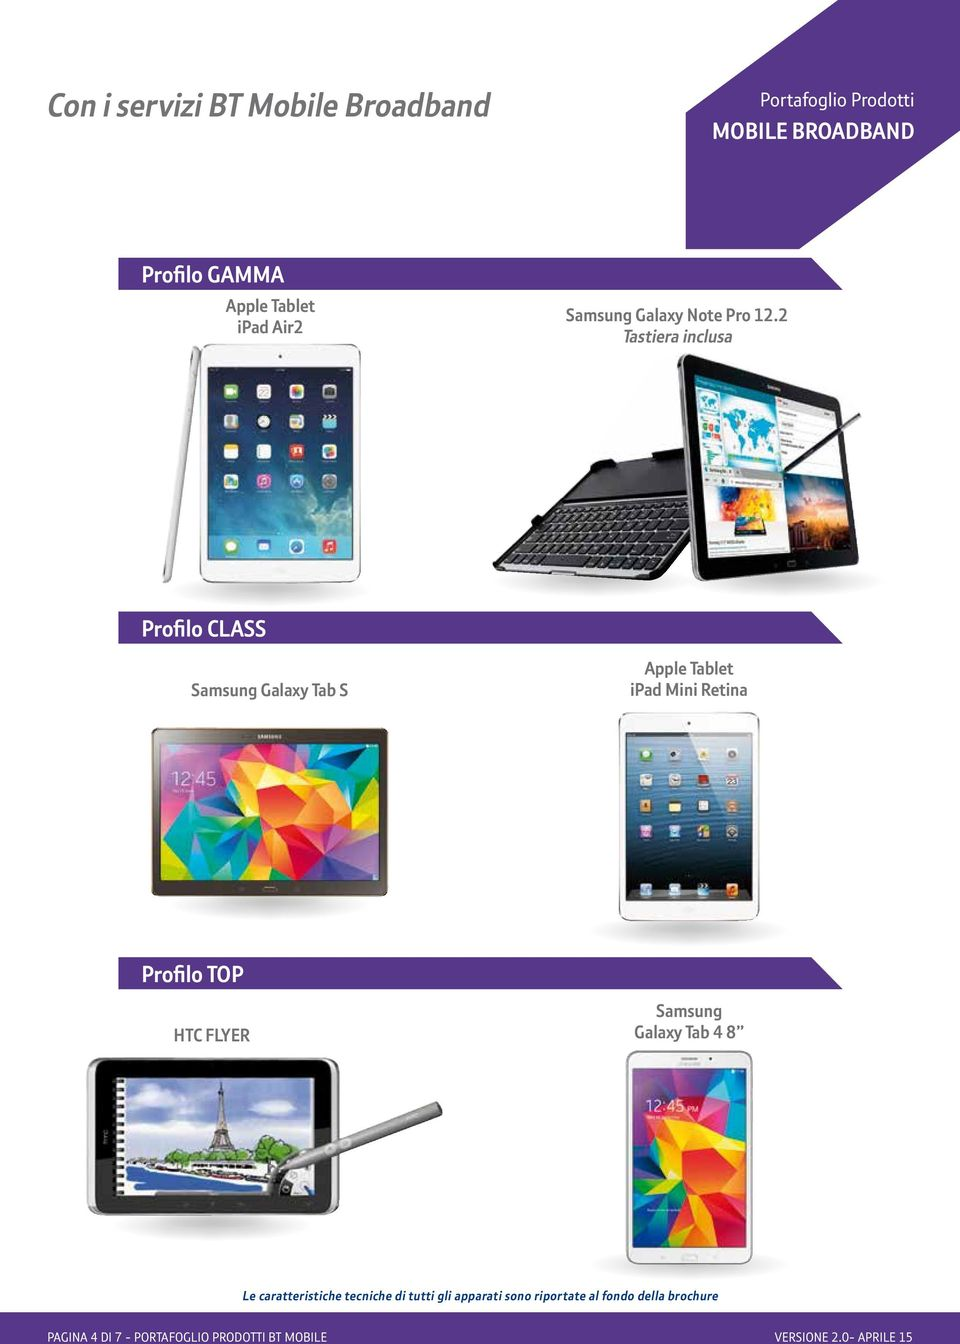 2 Tastiera inclusa Profilo CLASS Galaxy Tab S Apple Tablet ipad Mini Retina Profilo TOP